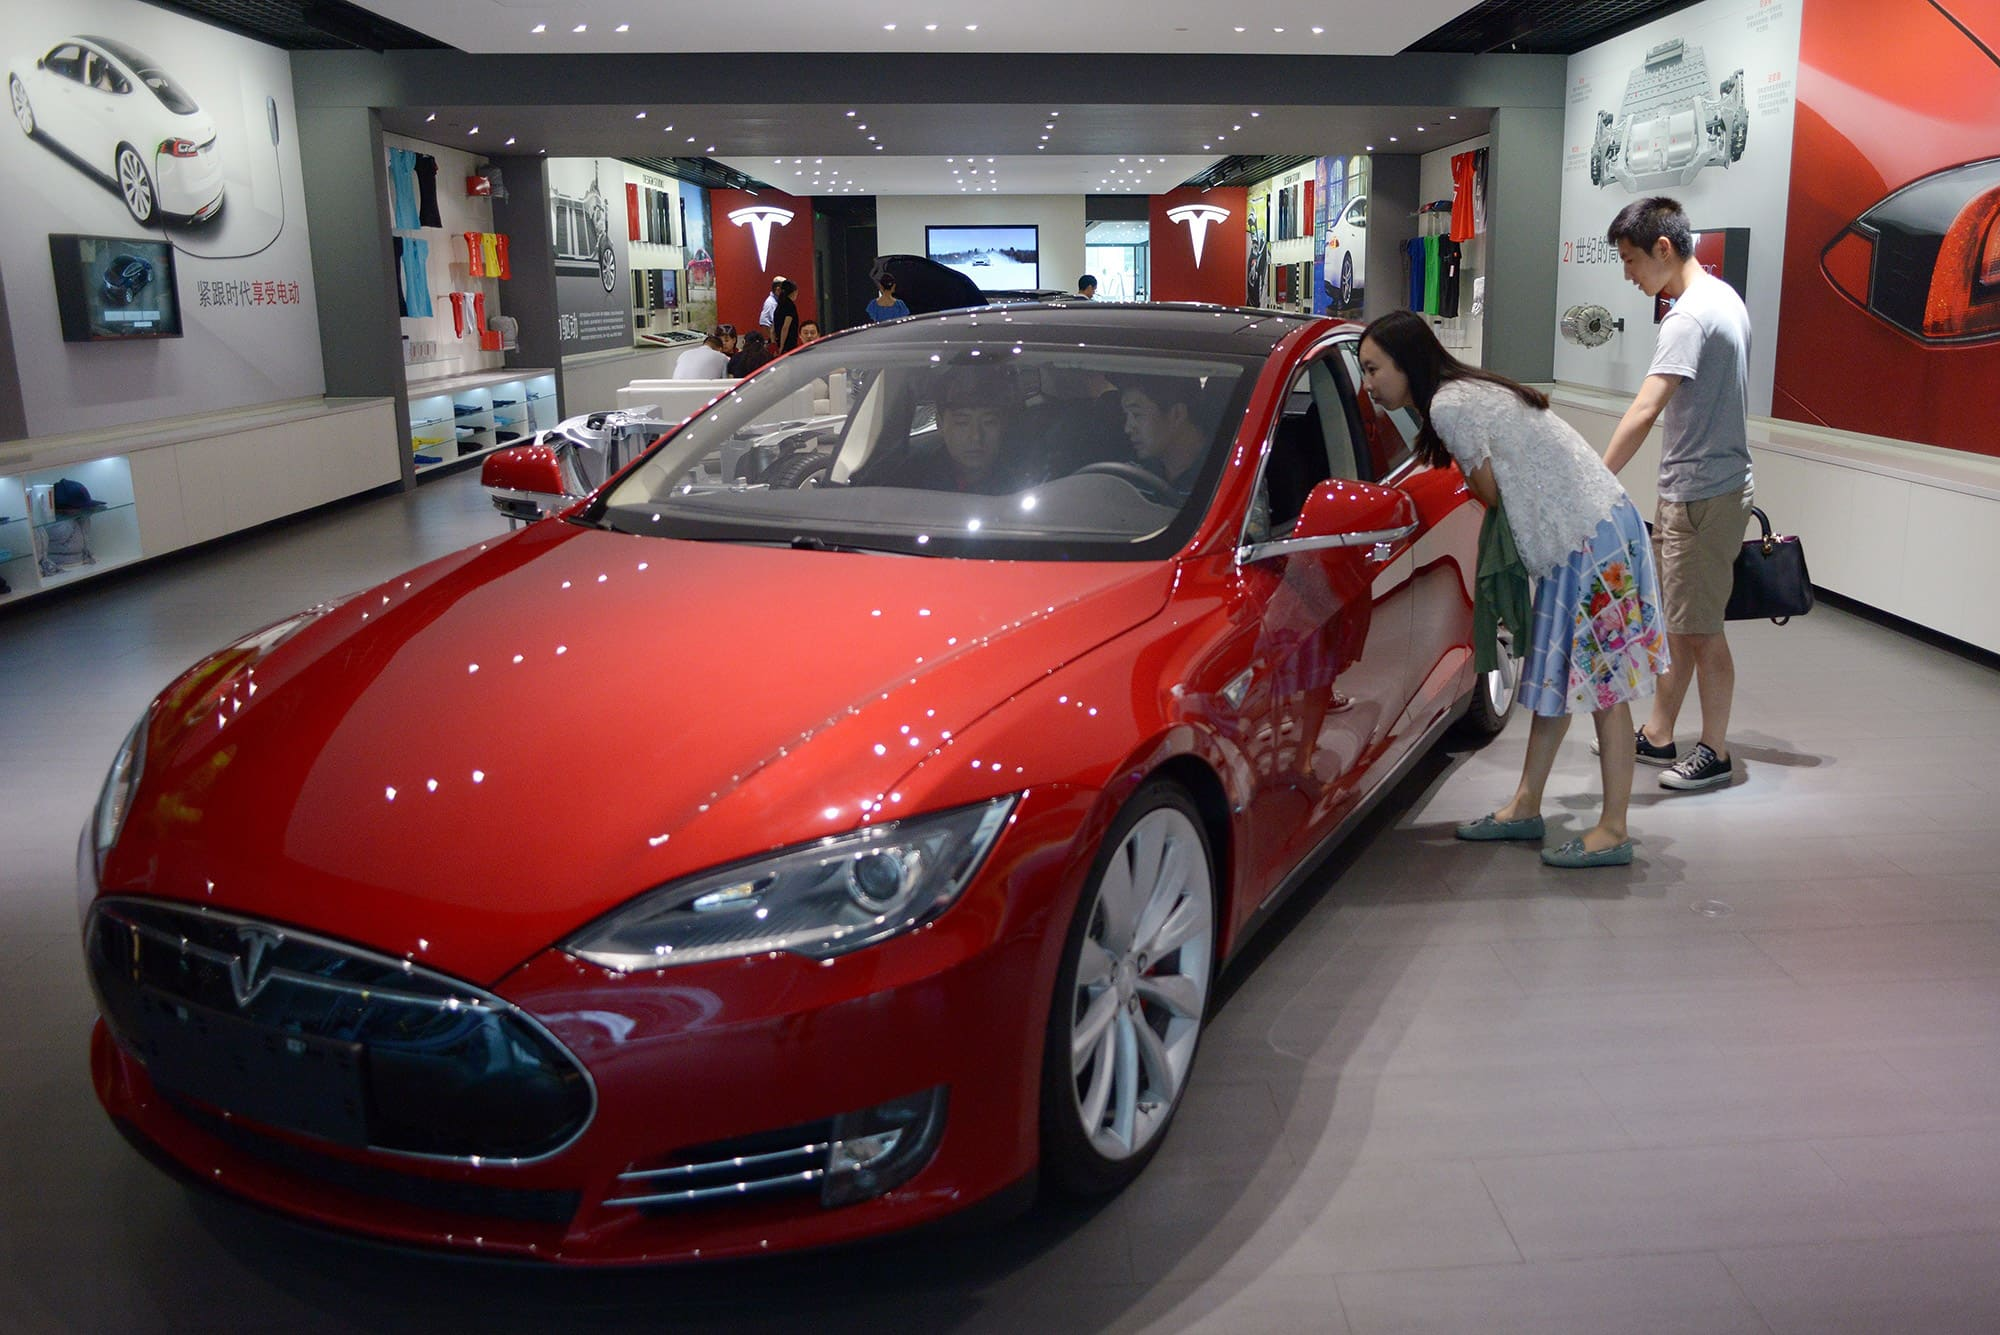 A look at auto insurance registration data in China may show Tesla sales surging